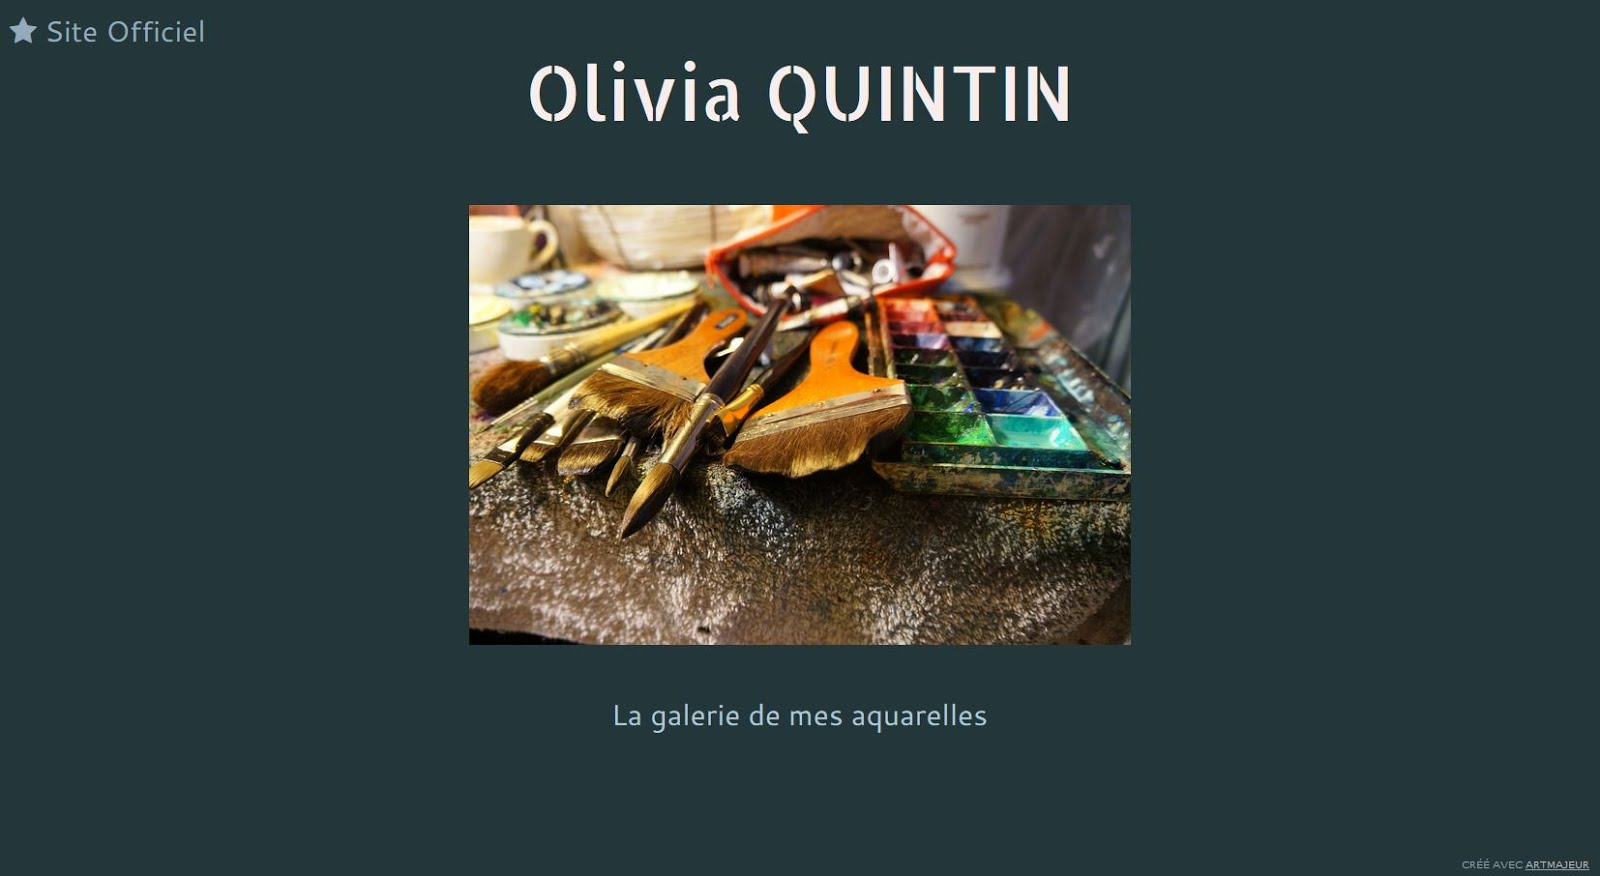 Vers le SITE OFFICIEL d'Olivia